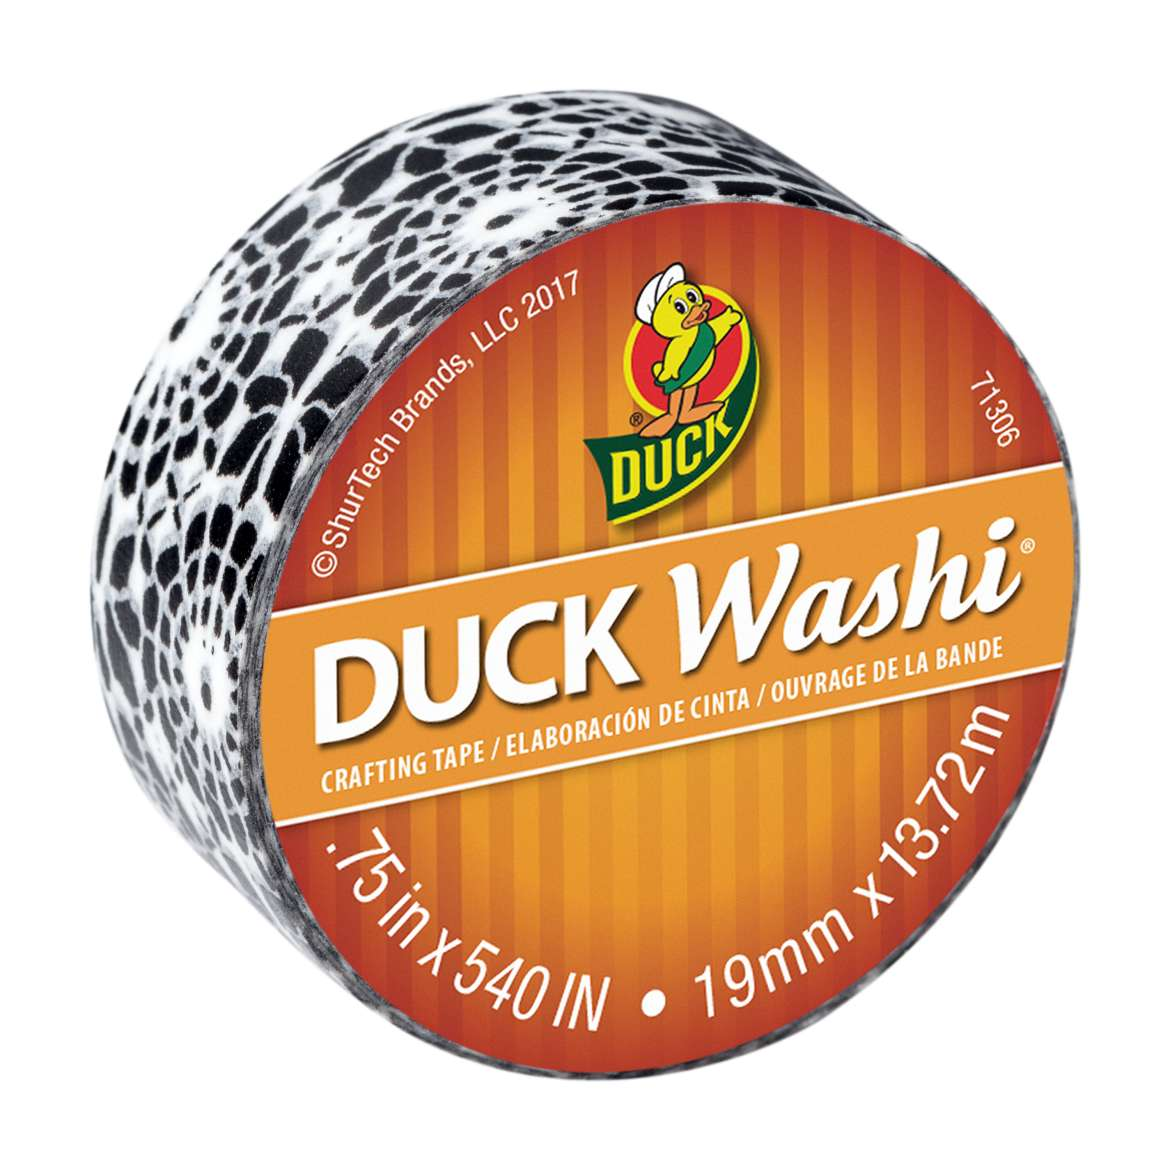 Duck Washi® Crafting Tape - Black Medallion, 0.75 in. x 15 yd. Image